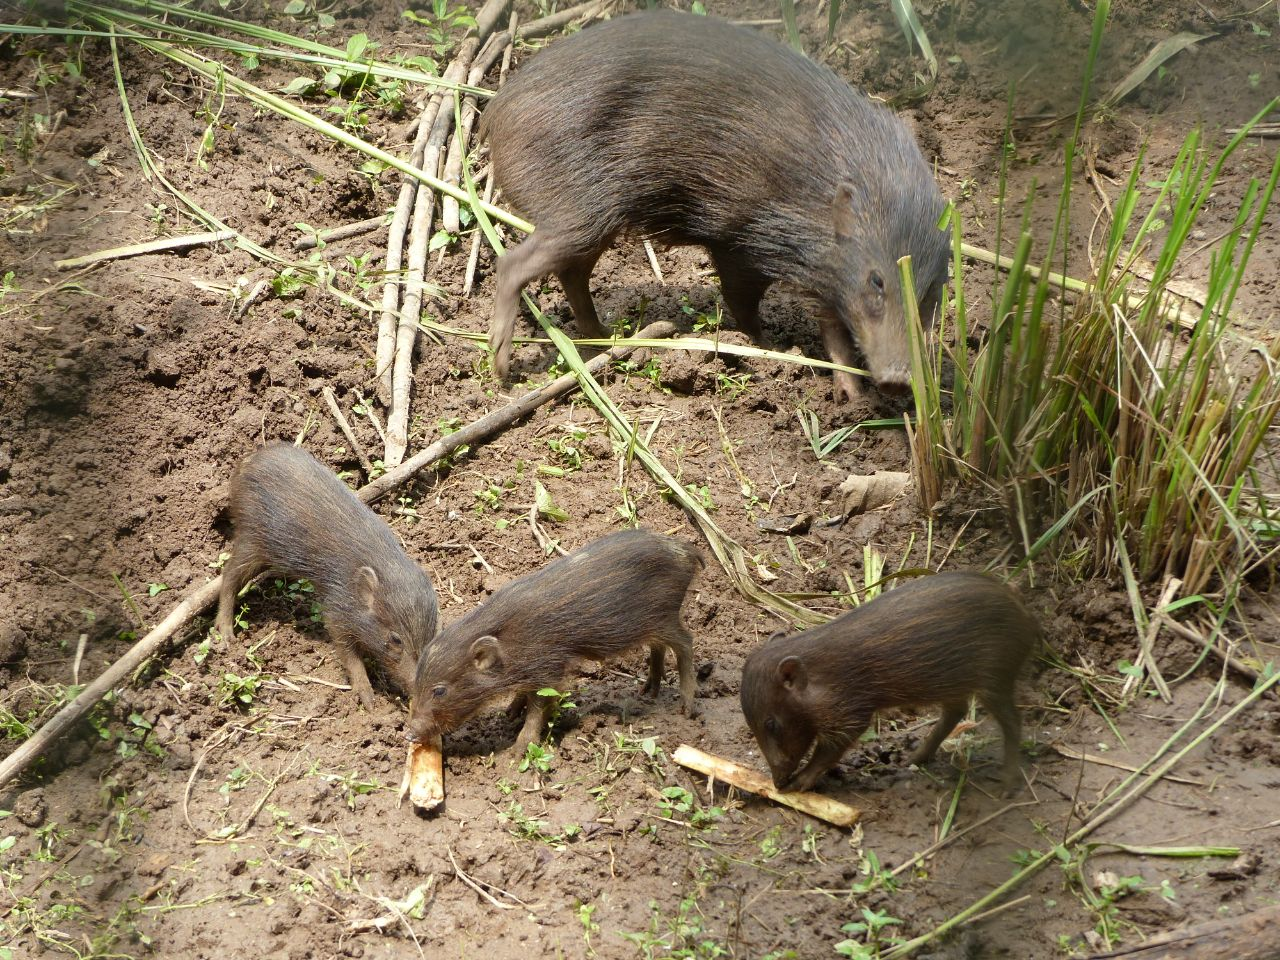 A pygmy hog mother with her piglets at a conservation breeding centre in Assam. The breeding center of this critically endangered animal is depending on home gardens and the Guwahati zoo to provide food during the lockdown. Photo by Tammo Buss.